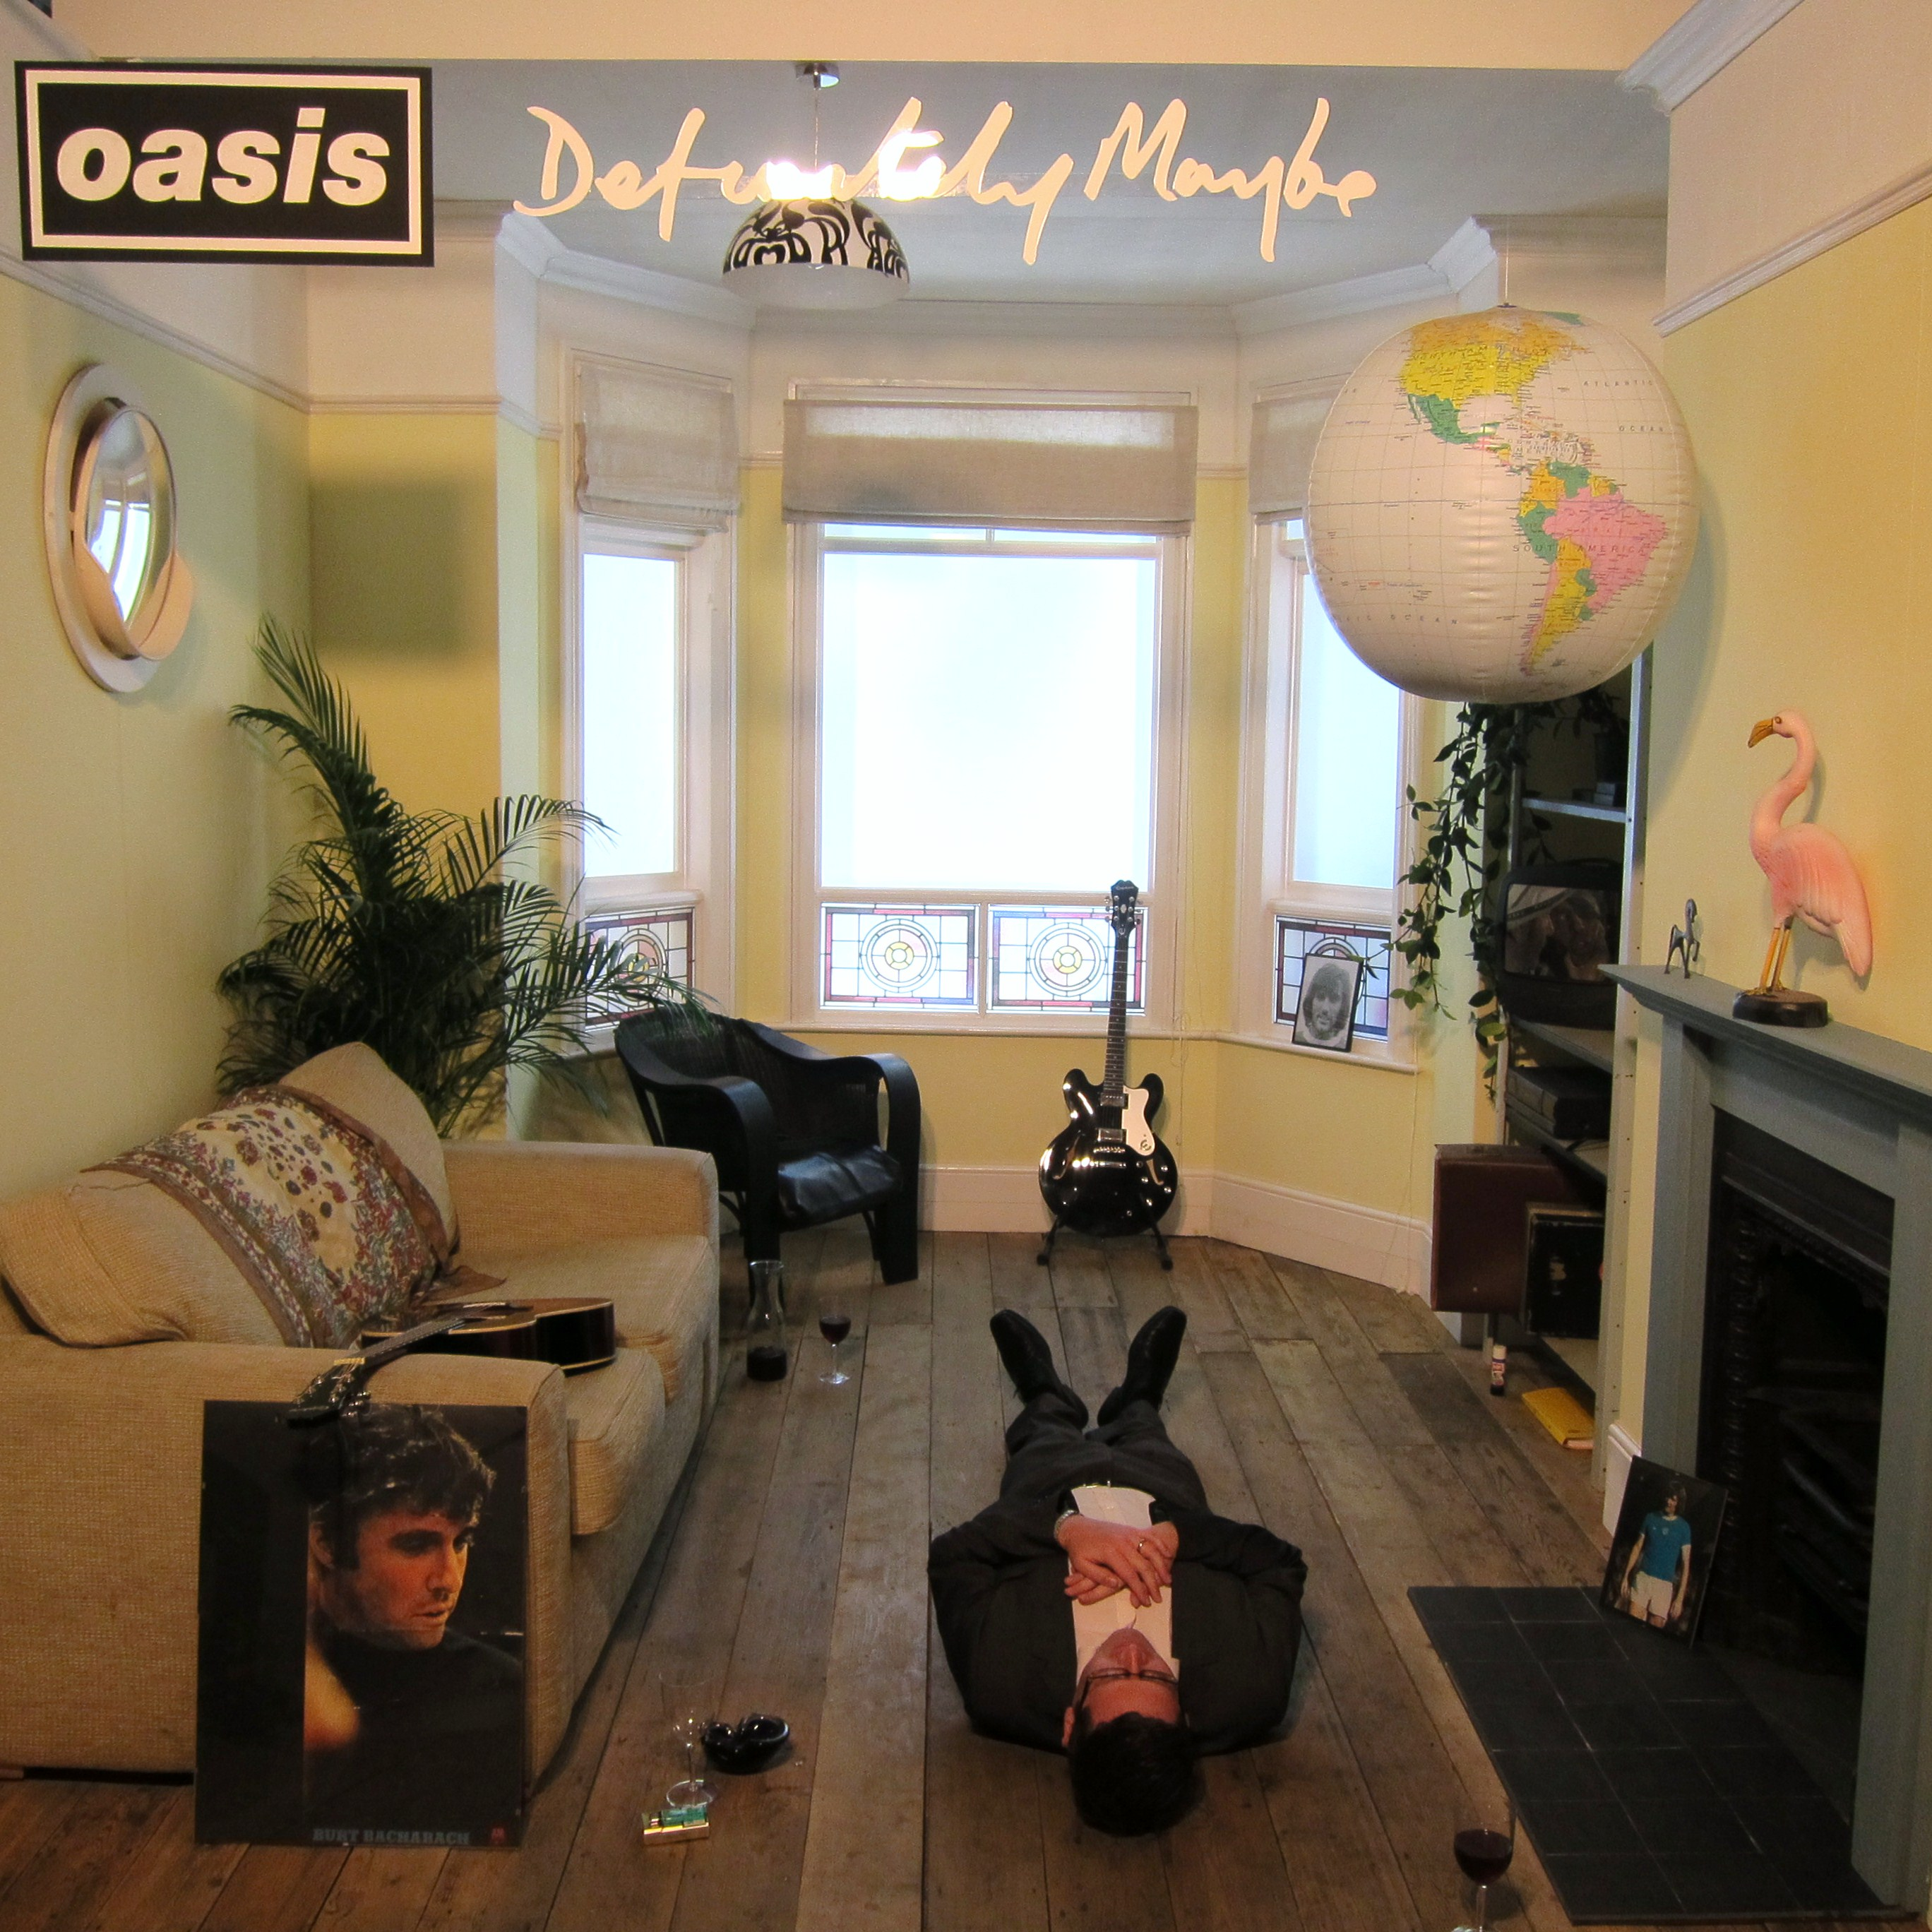 New Oasis Exhibition Chasing The Sun 1993 1997 Every Record Tells A Story